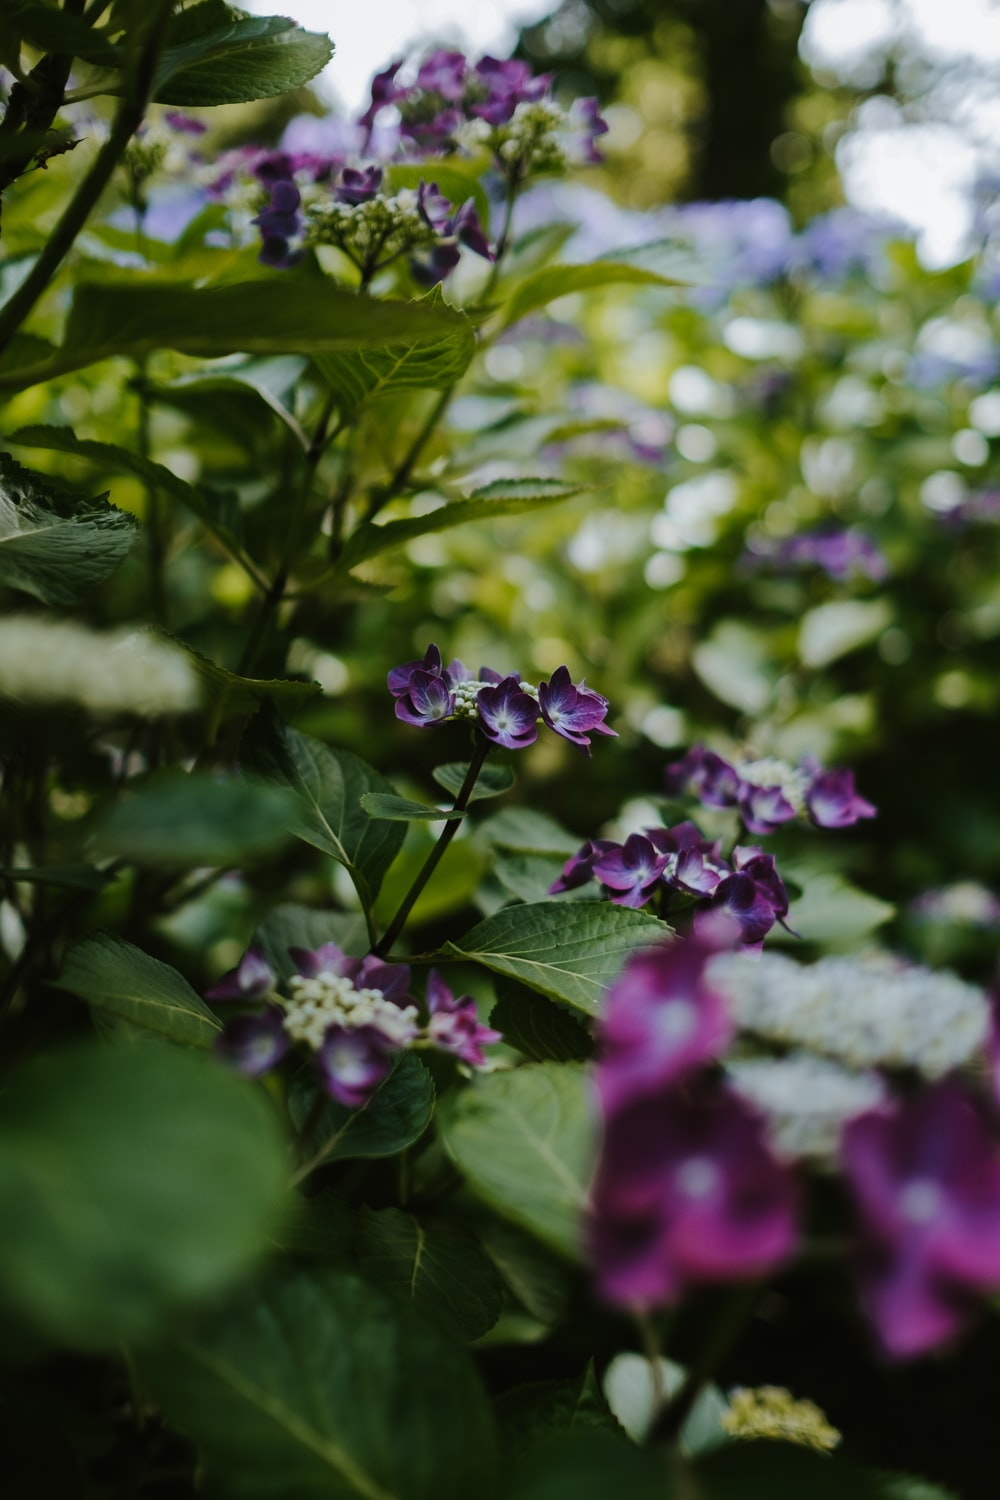 selective focus photography of green-leafed purple-petaled flowering plant